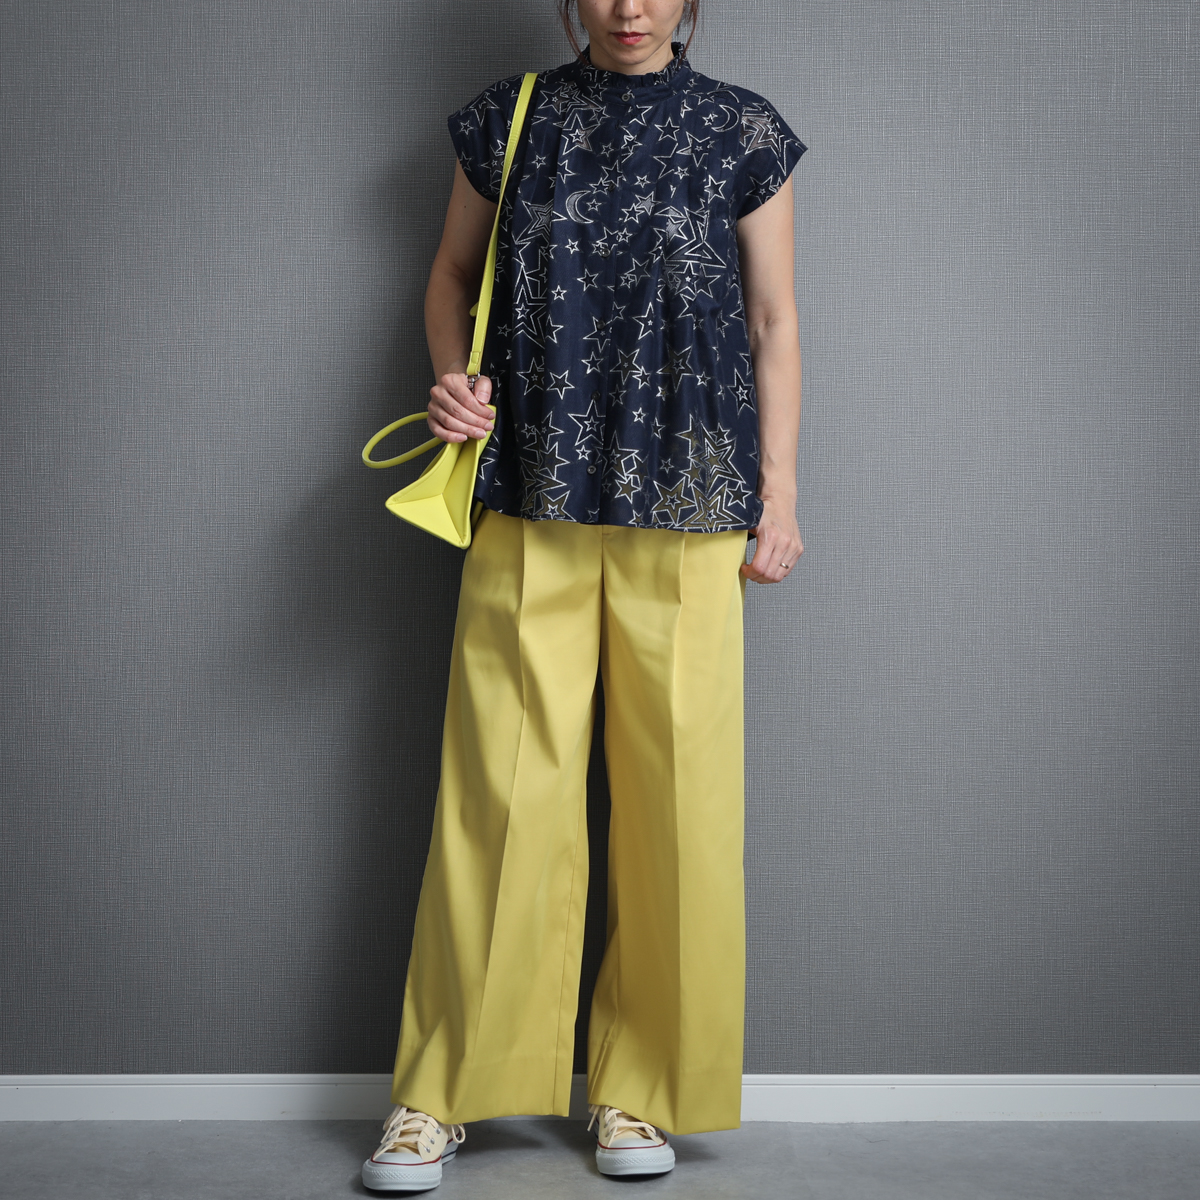 『Stretch jacquard twill』 Wide pants YELLOW画像